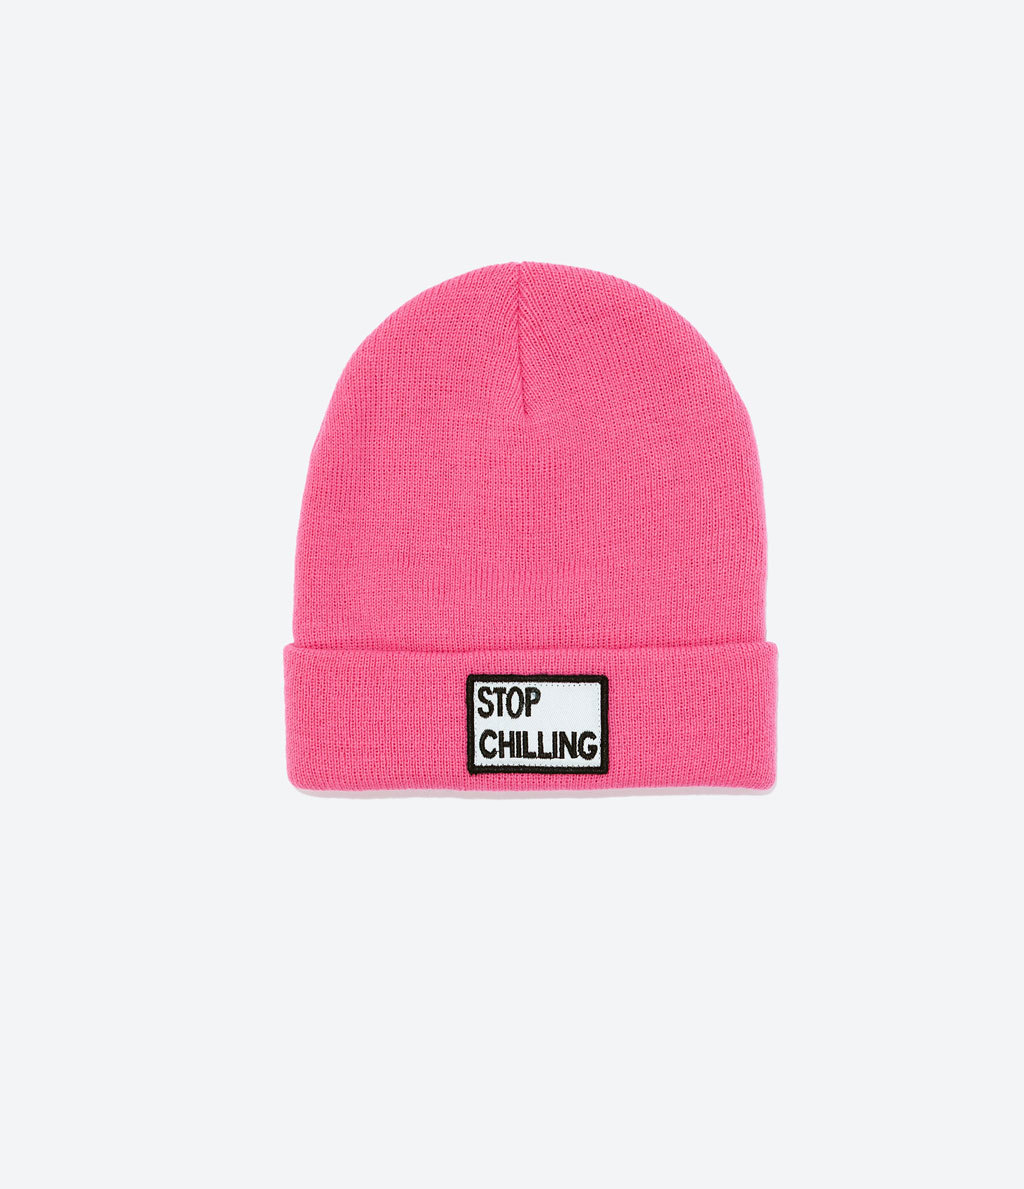 Knit Hat With Text - predominant colour: pink; occasions: casual; type of pattern: standard; style: beanie; size: standard; material: knits; pattern: plain; season: a/w 2014